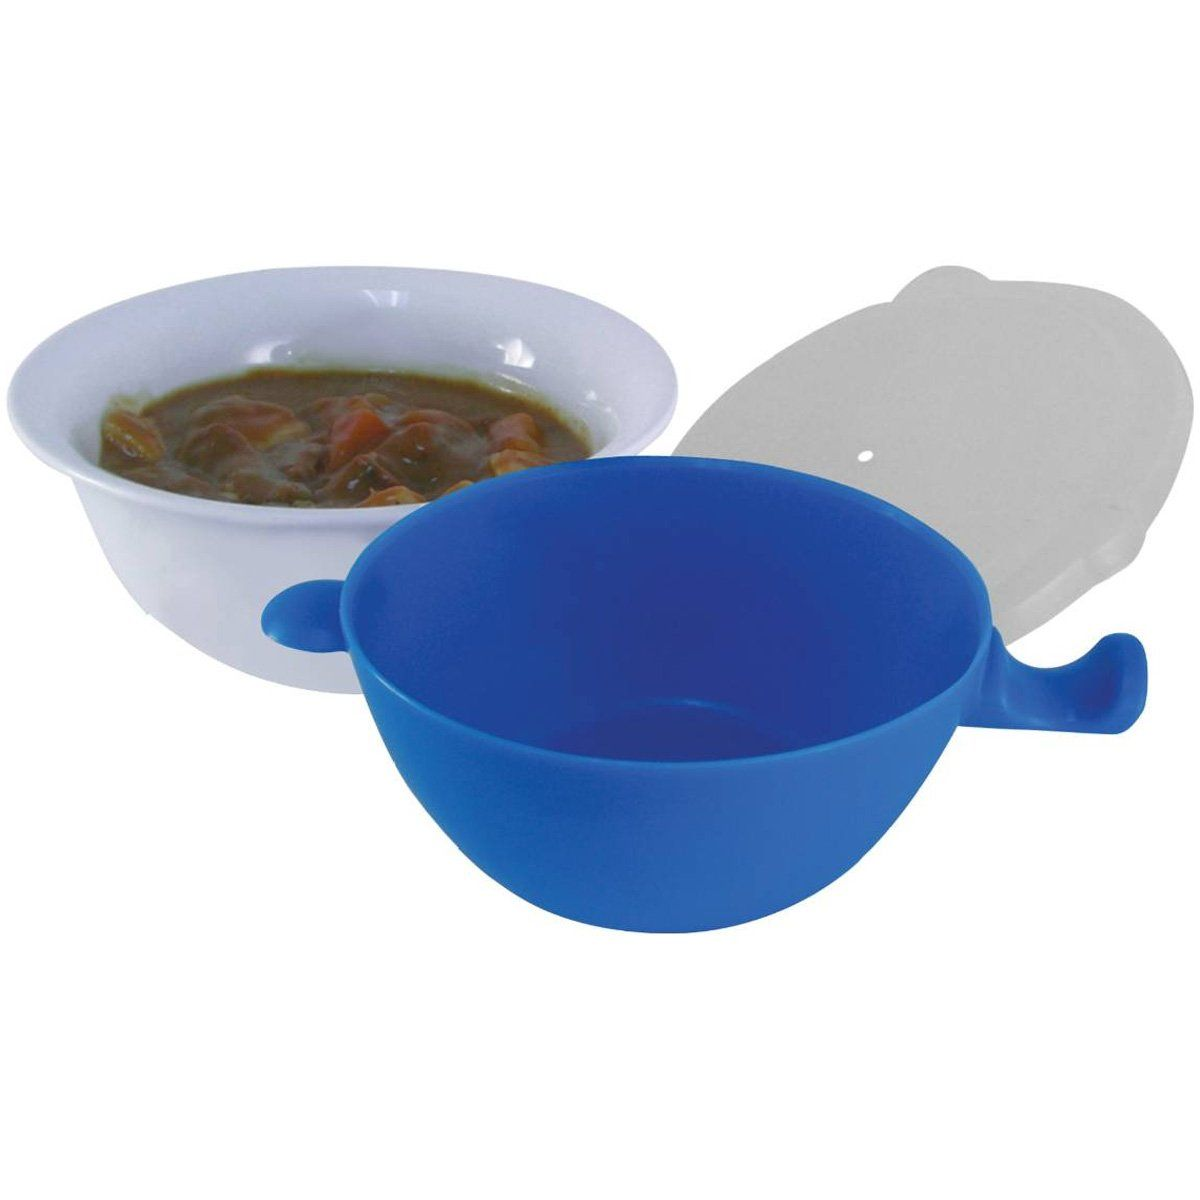 Cool Touch Microwave Safe Piece In 2020 Microwave Bowls Clean Dishwasher Ceramic Bowls